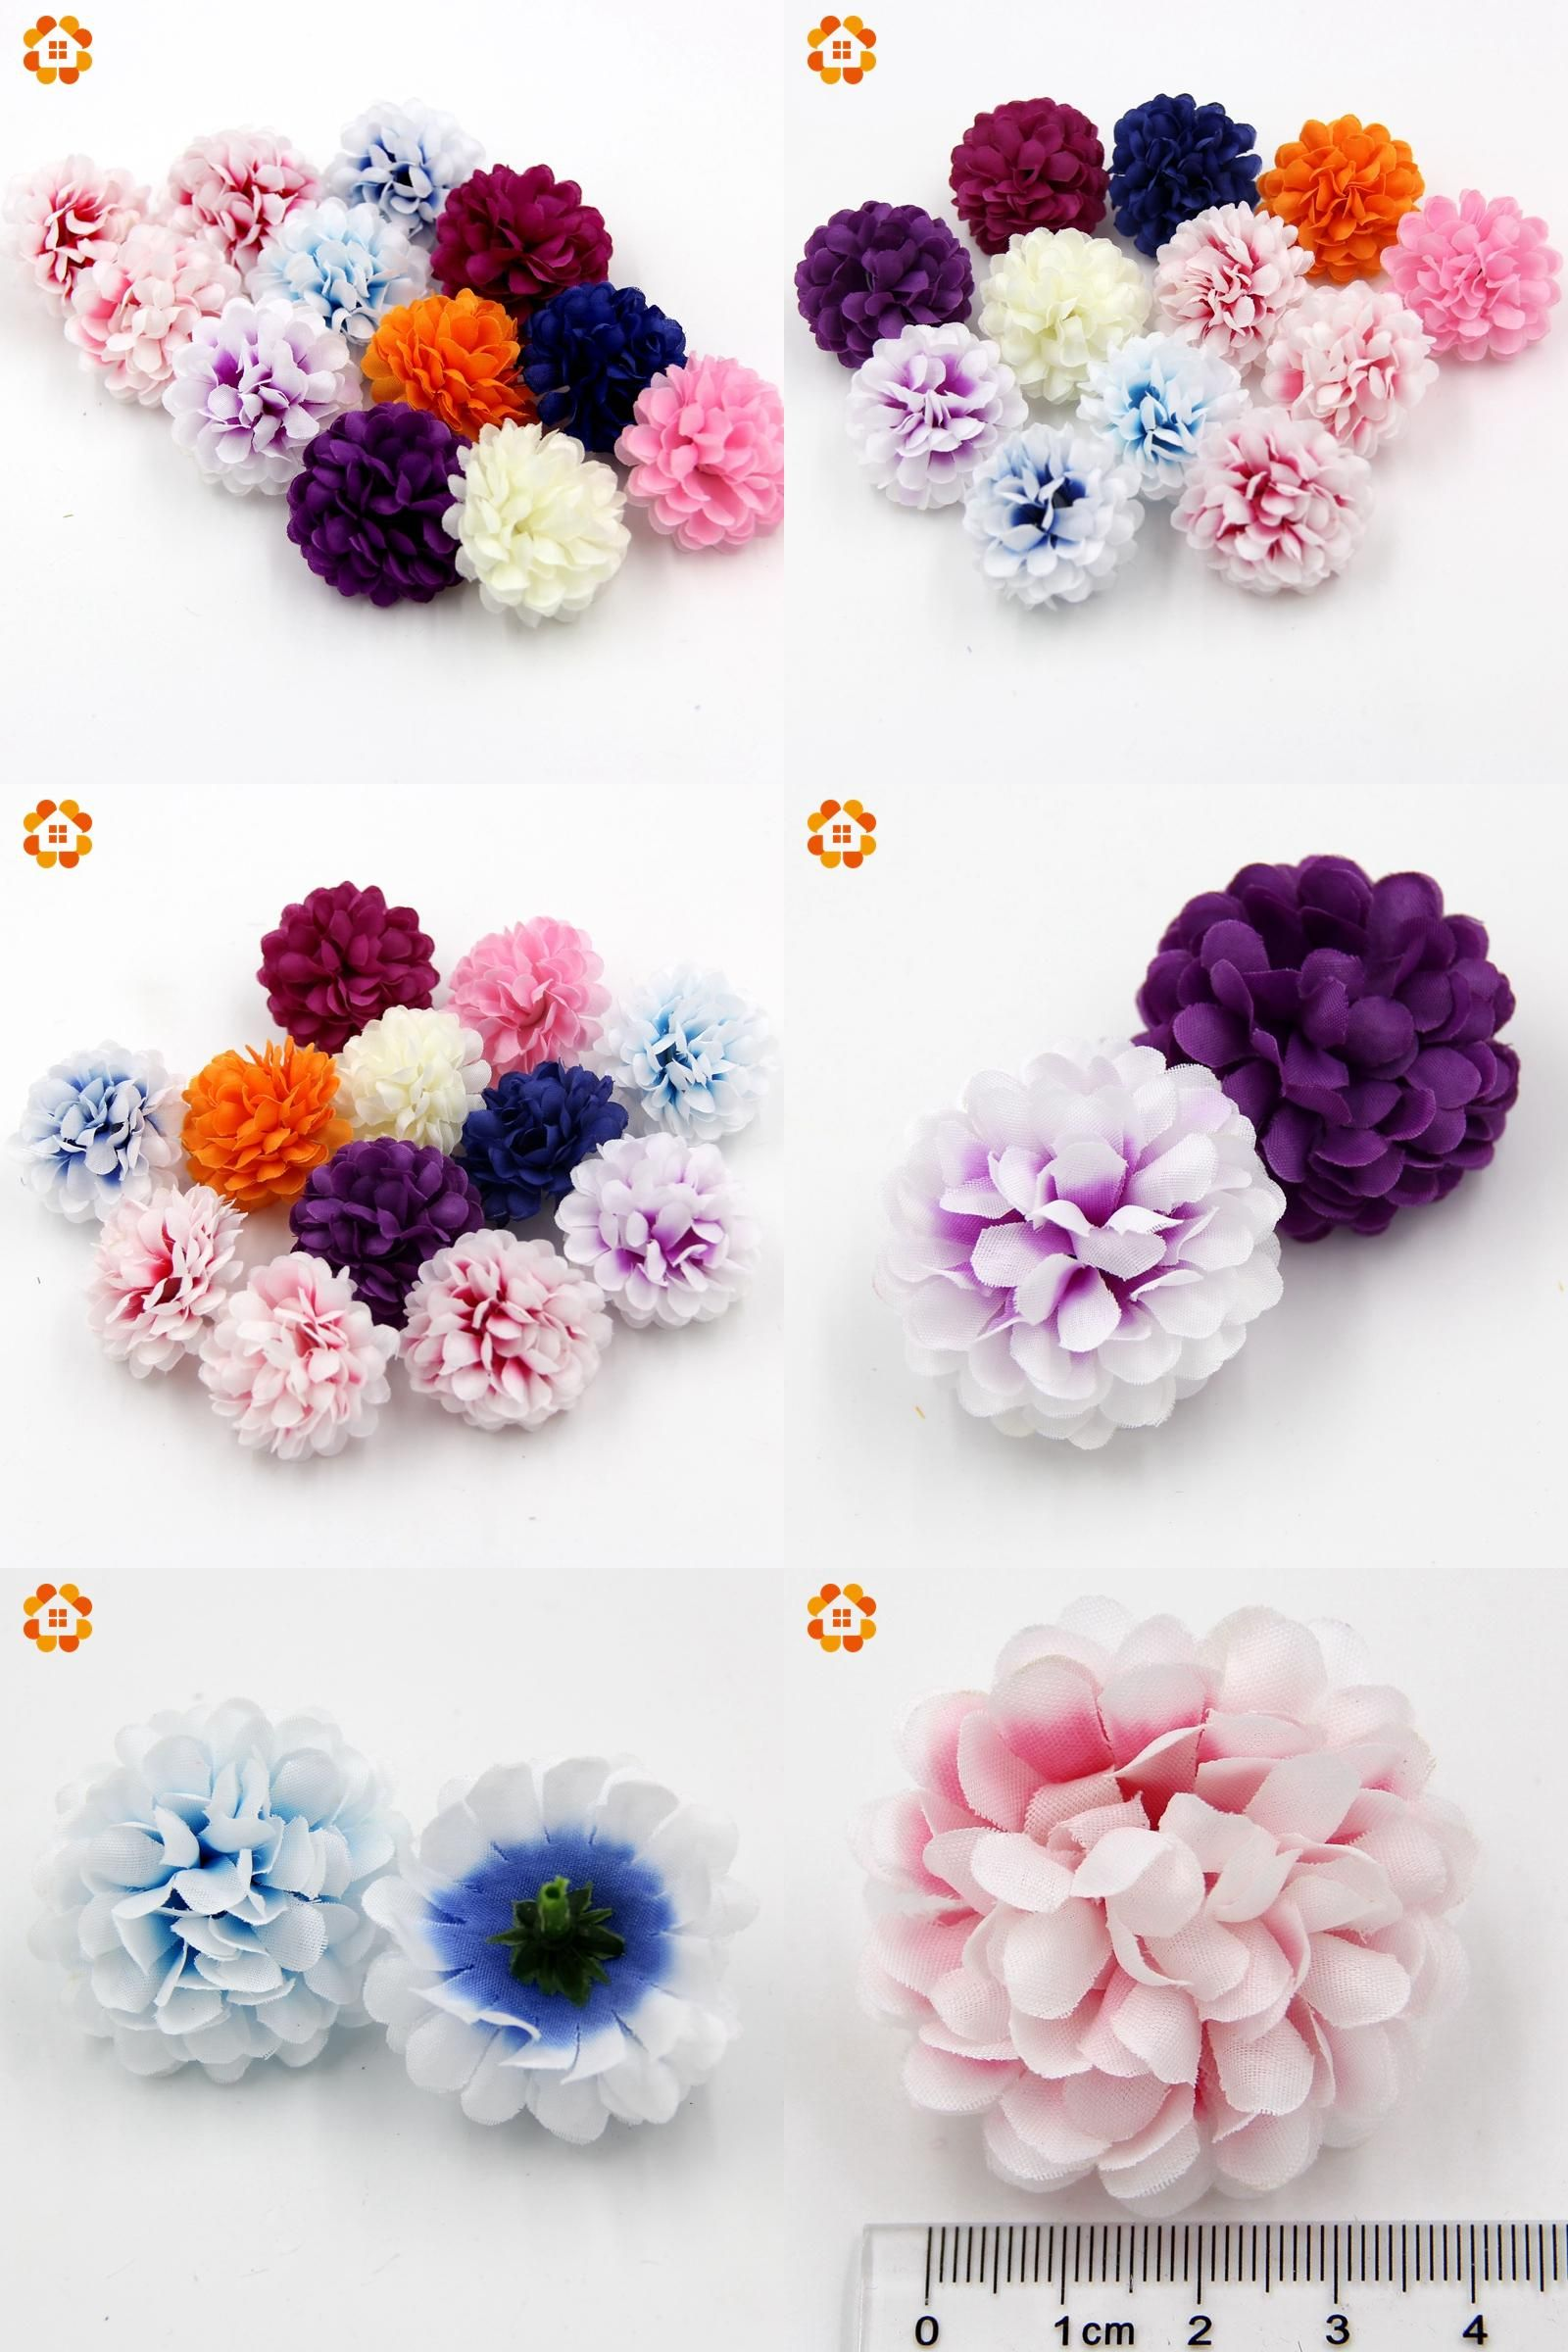 Visit To Buy 10pcs Diy Artificial Small Silk Flowers Head For Home